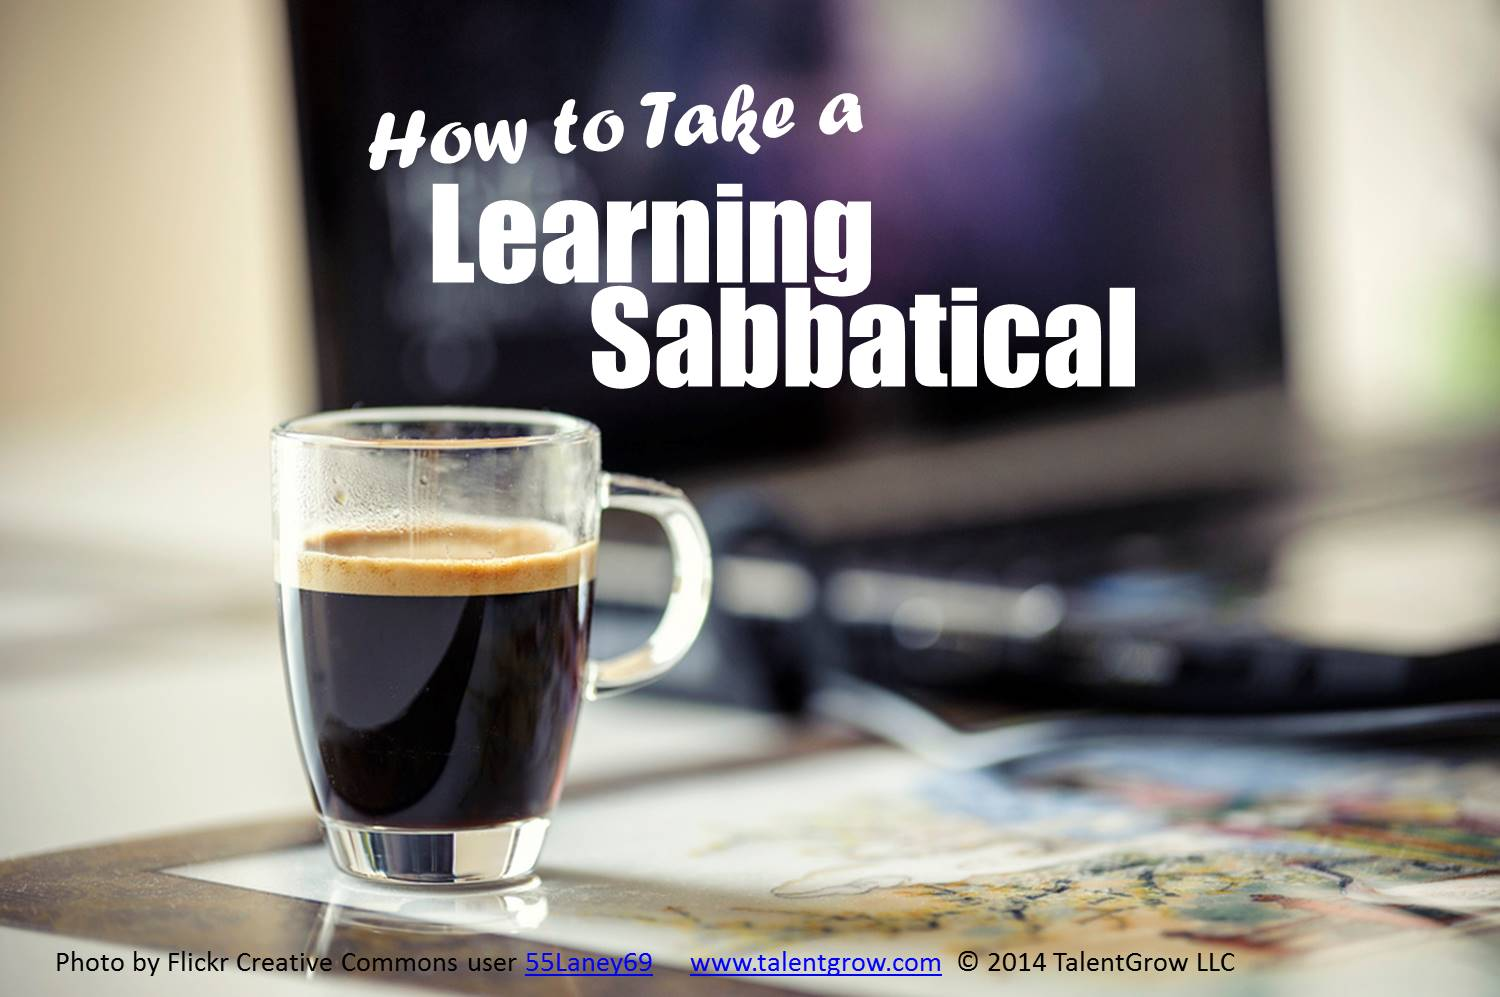 Espresso how to take a learning sabbatical